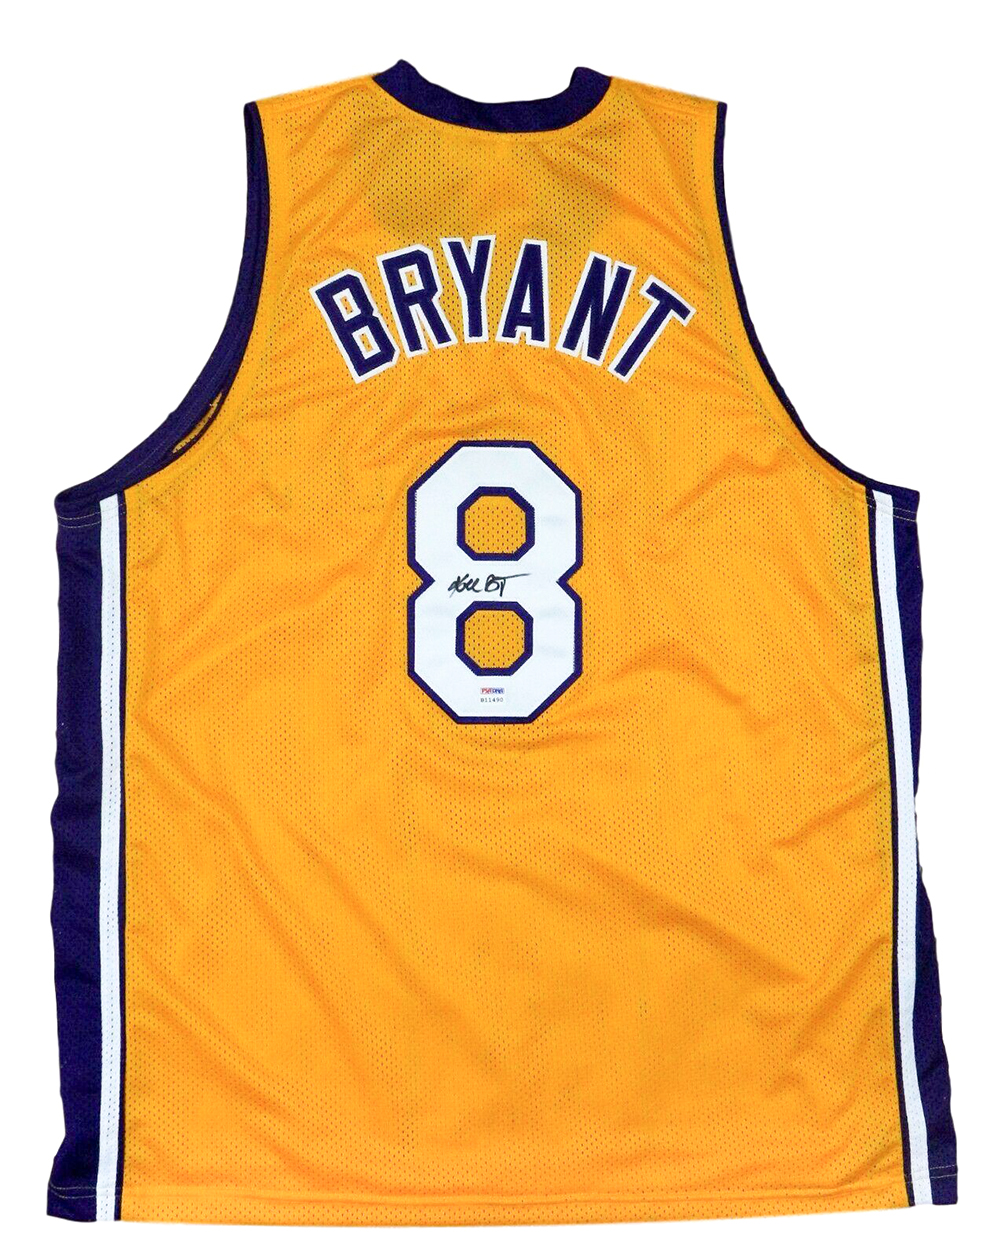 reputable site 396c6 c785e Details about Kobe Bryant Signed Custom Yellow Los Angeles Basketball  Jersey PSA/DNA